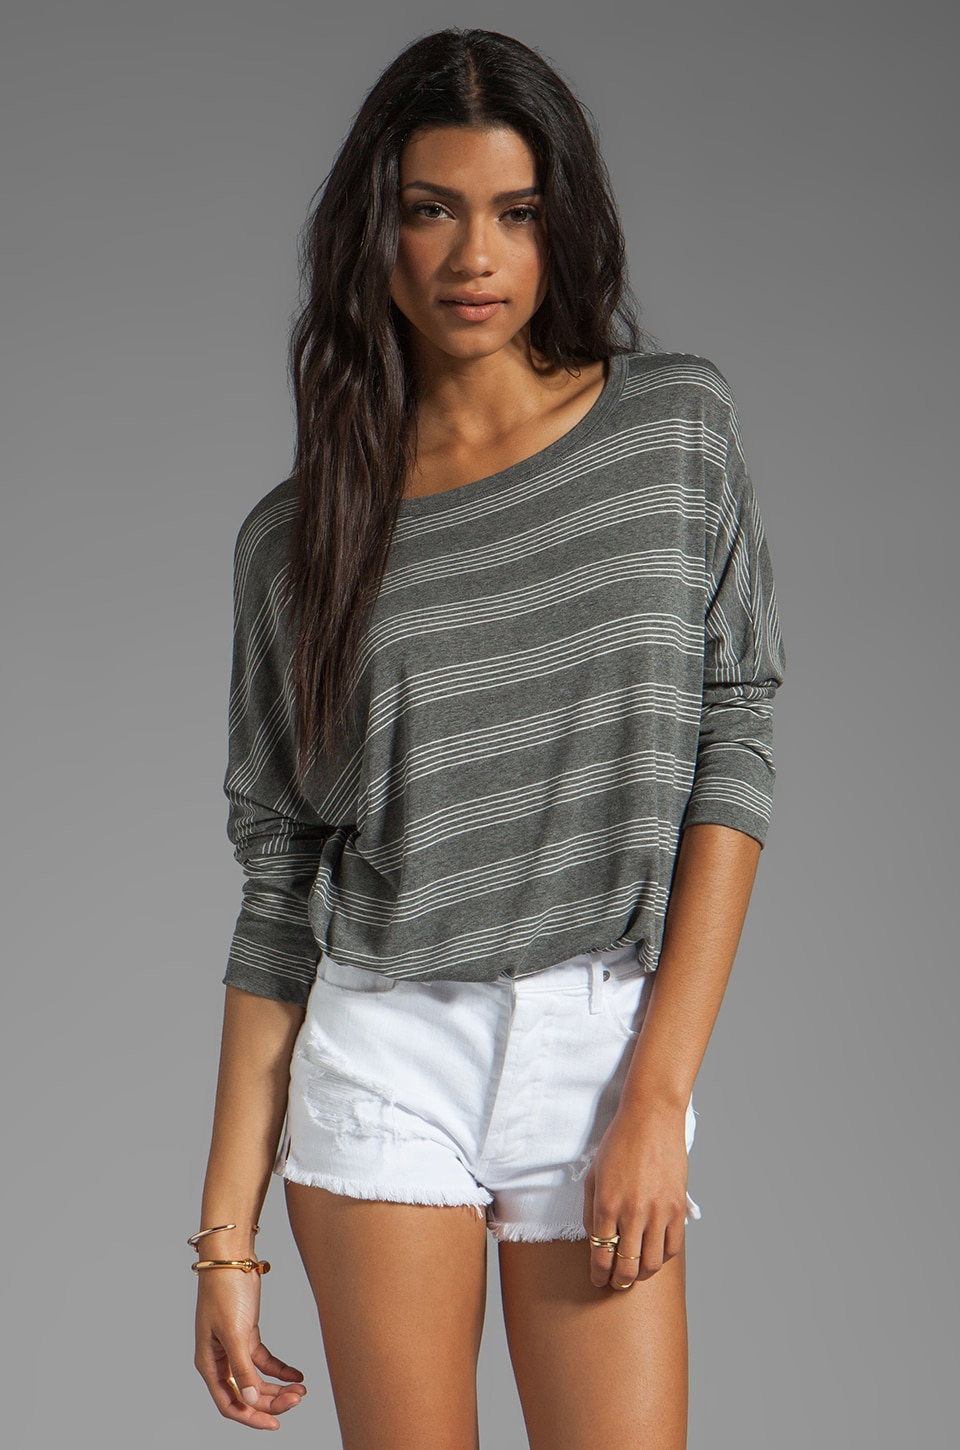 Soft Joie Sagittarius Stripe Top in Dark Heather Grey